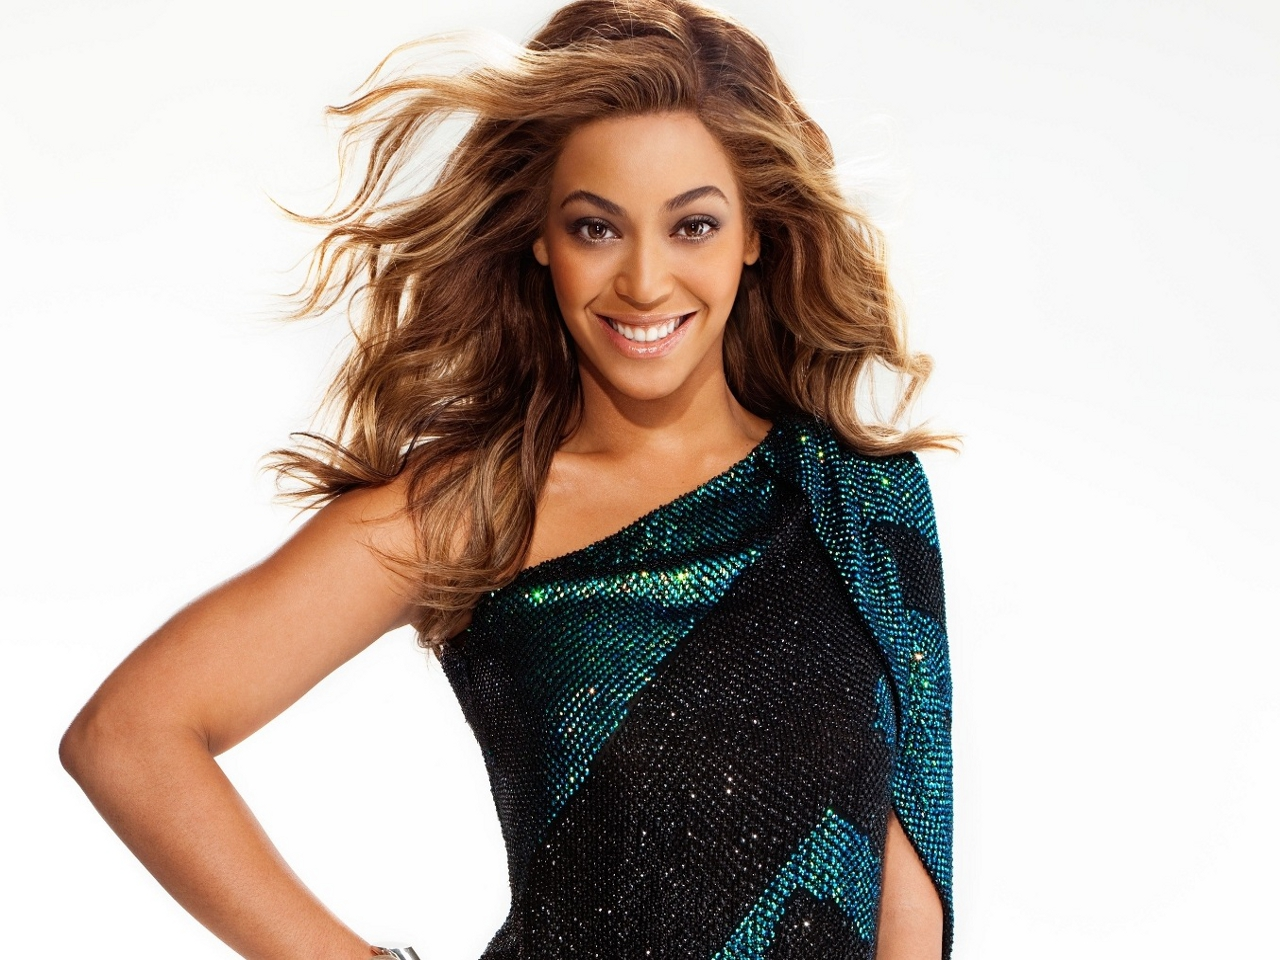 Pictures Of Beyonce 121